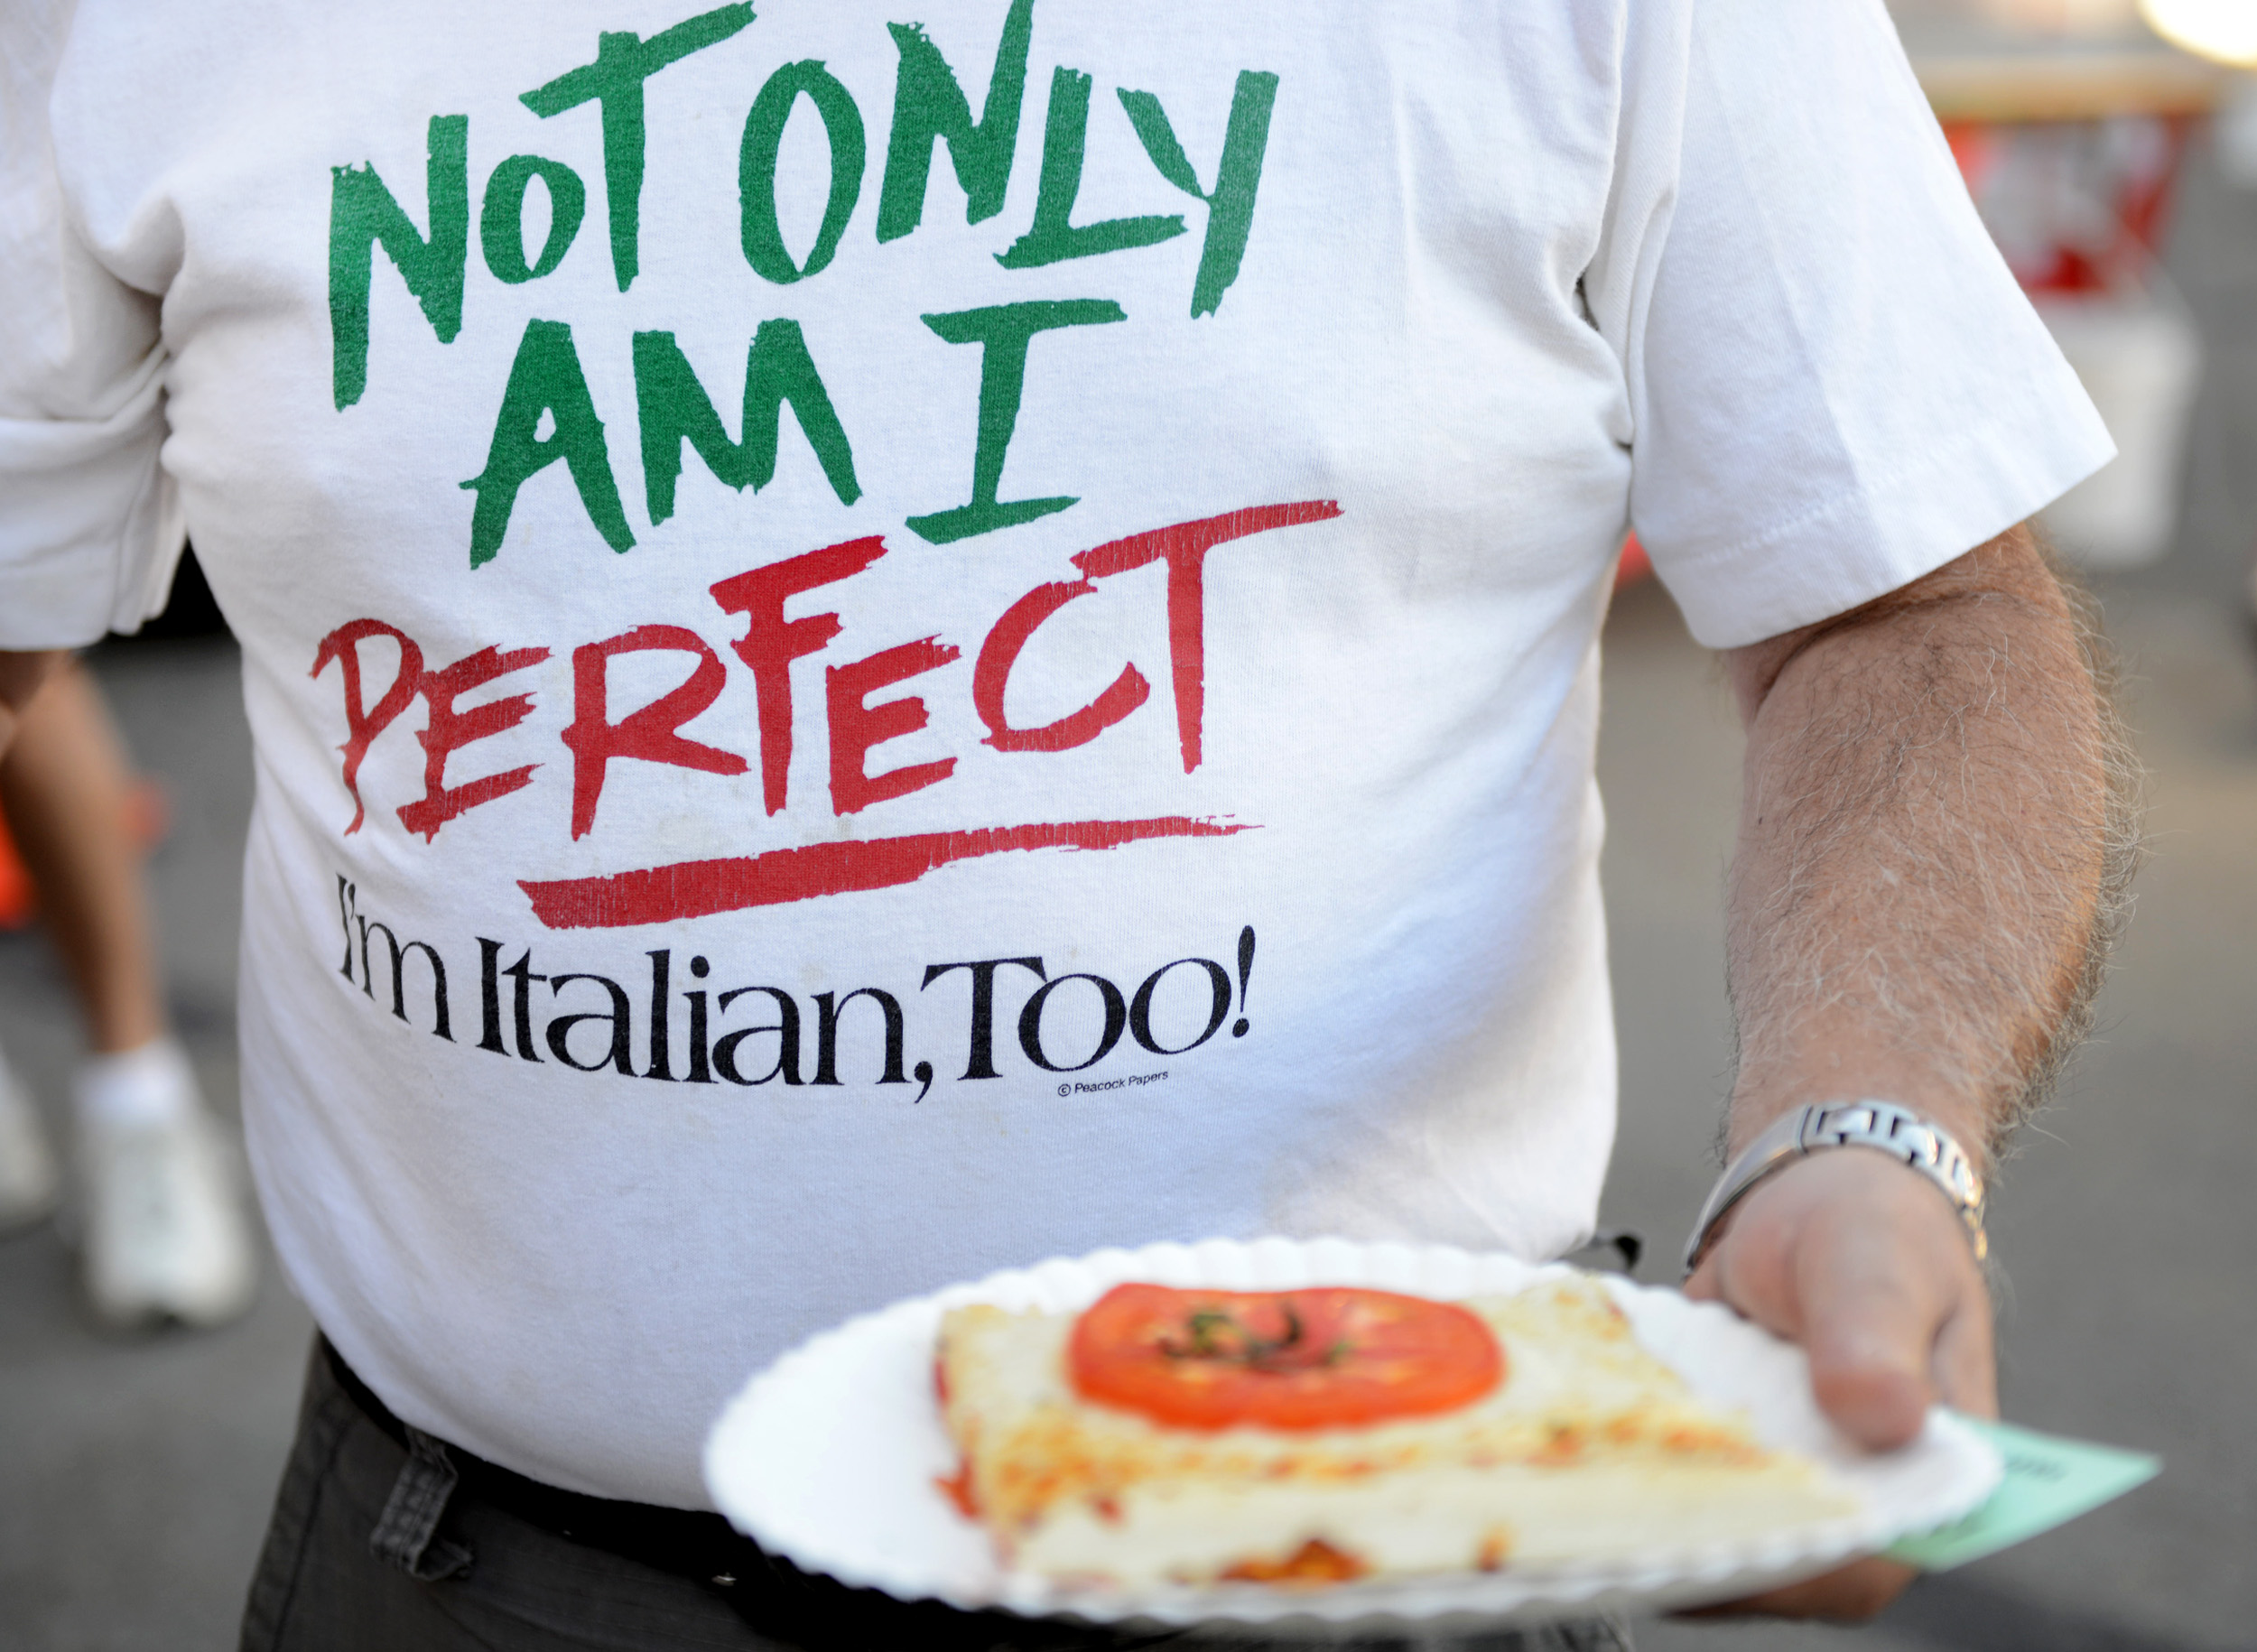 Jim Tallarico, of Lower Burrell, shows off a slice of pizza and a festive shirt at Festa Italiana at Mount Saint Peter Parish in New Kensington on Thursday, July 30, 2015.